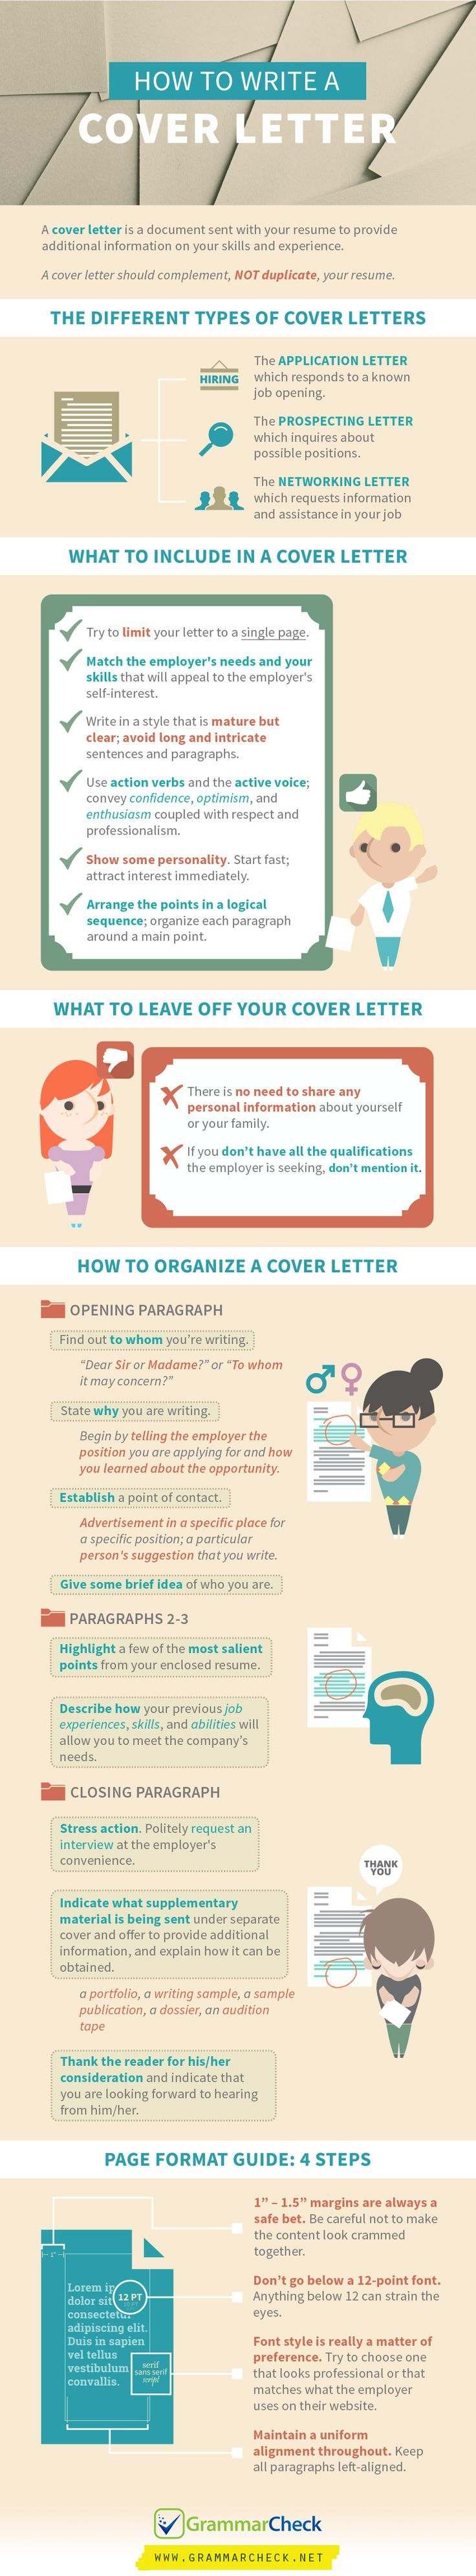 Cover Letter Advice Unique How To Write A Cover Letter  Cover Letter Tips  Cover Letters Design Inspiration